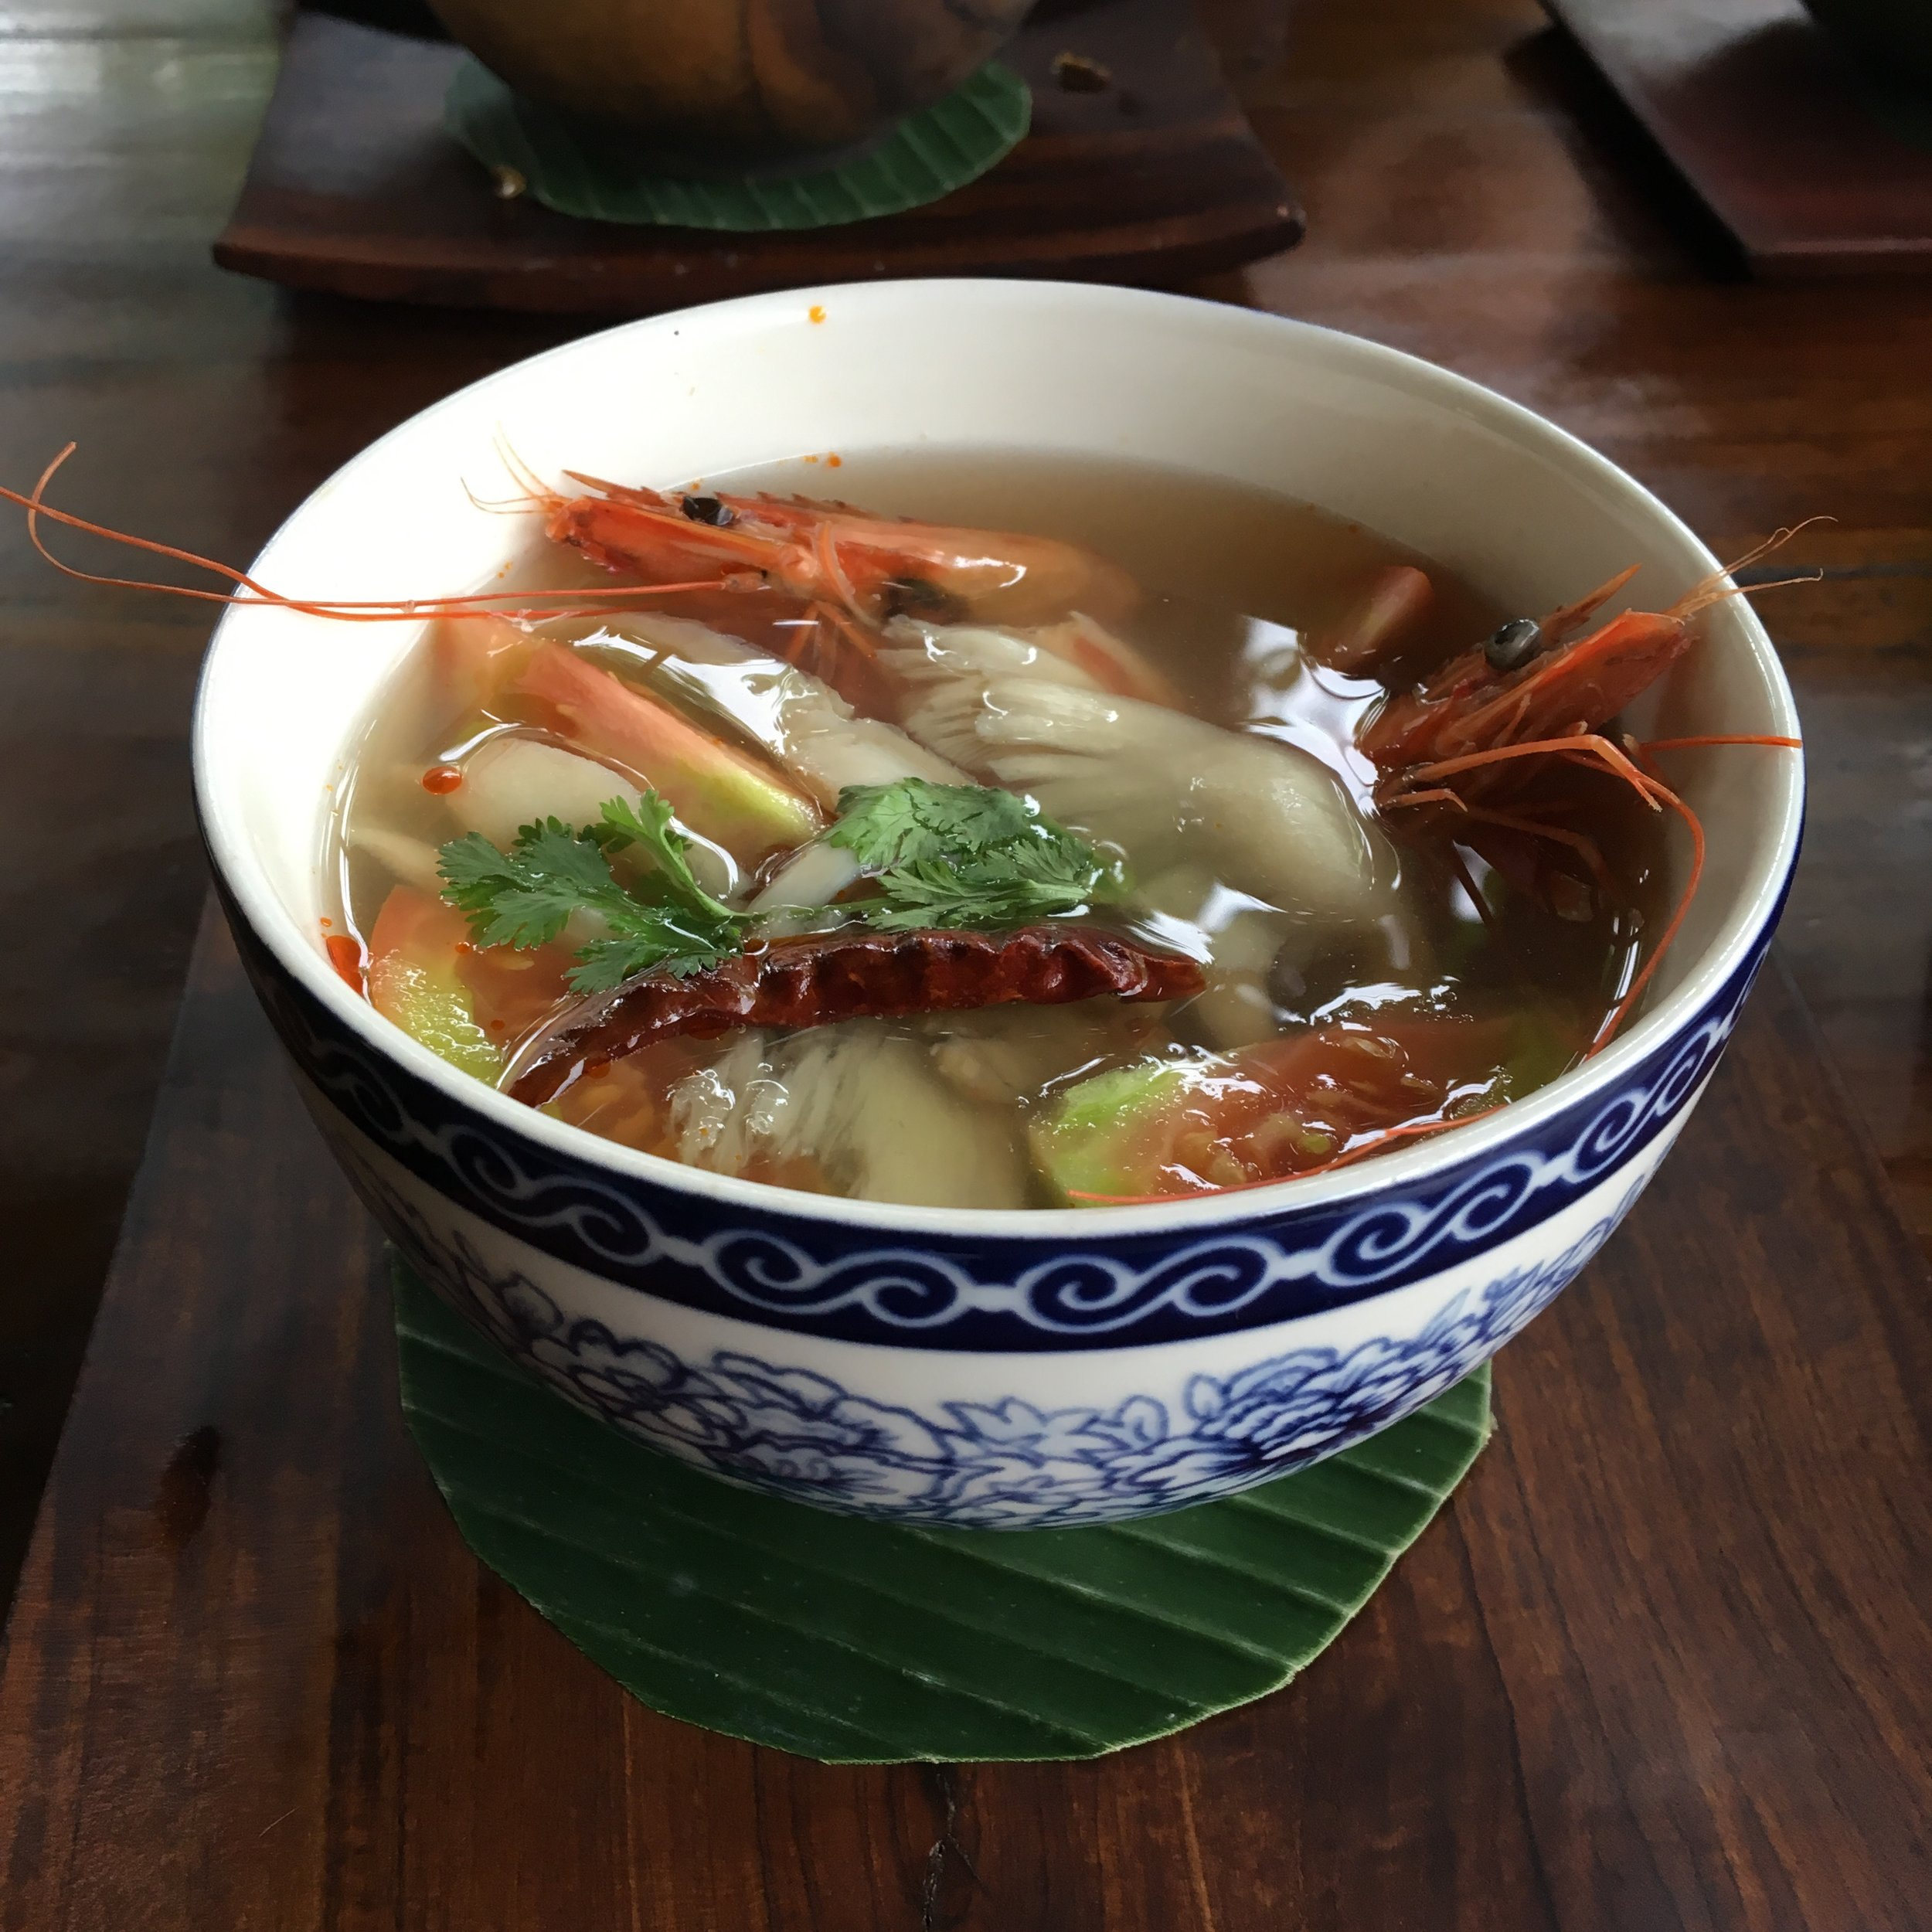 The most beautiful Tom-Yum soup I've ever seen.